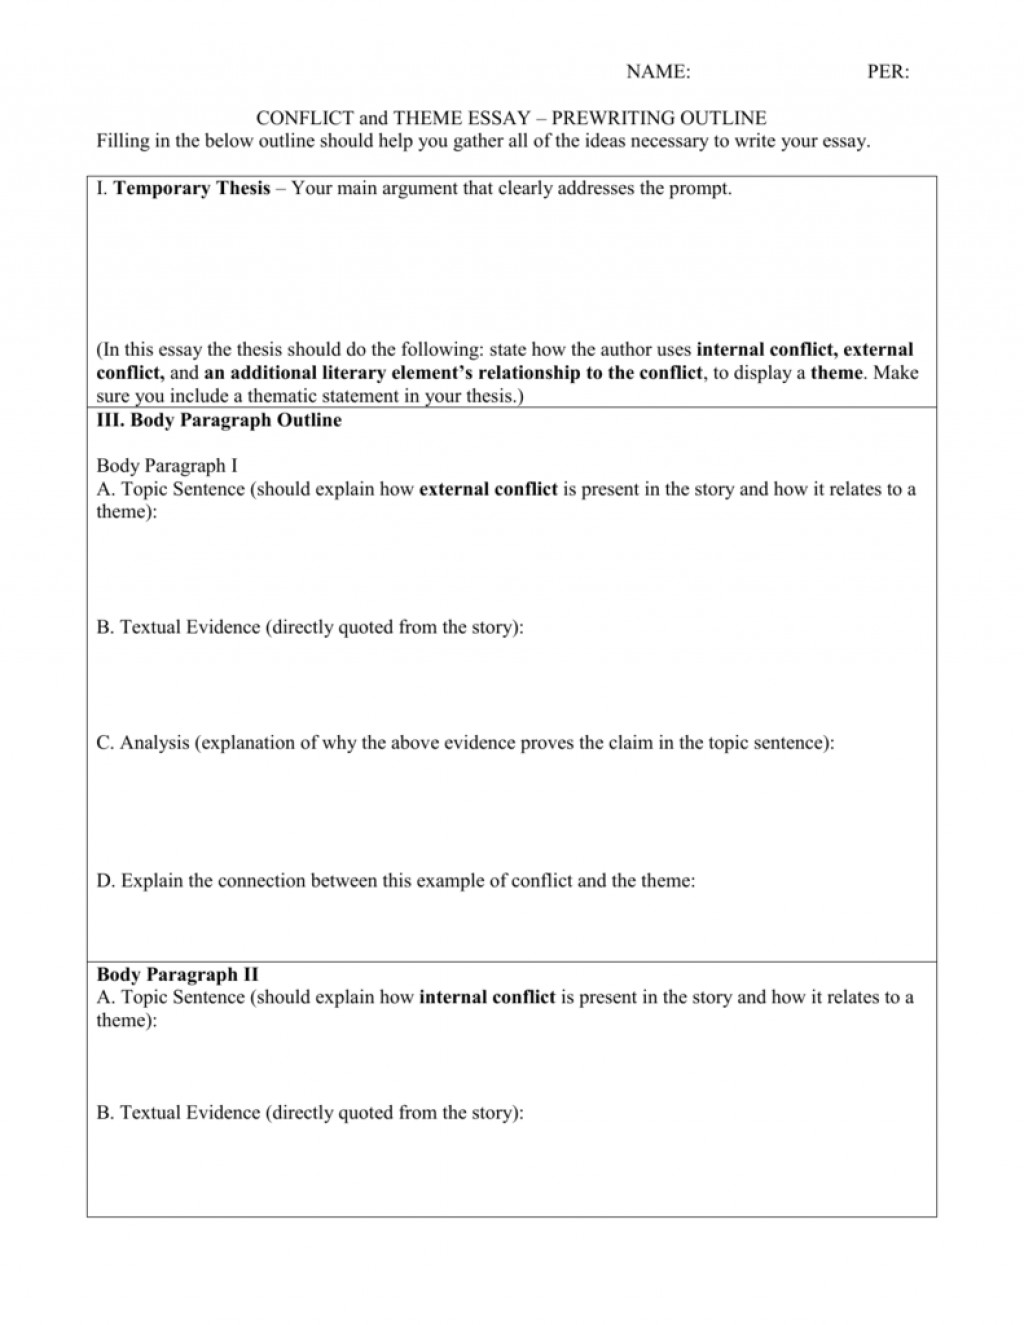 009 Essay Example How To Write An On Theme 008002500 1 Fantastic A In Literature The Of Poem Novel Large